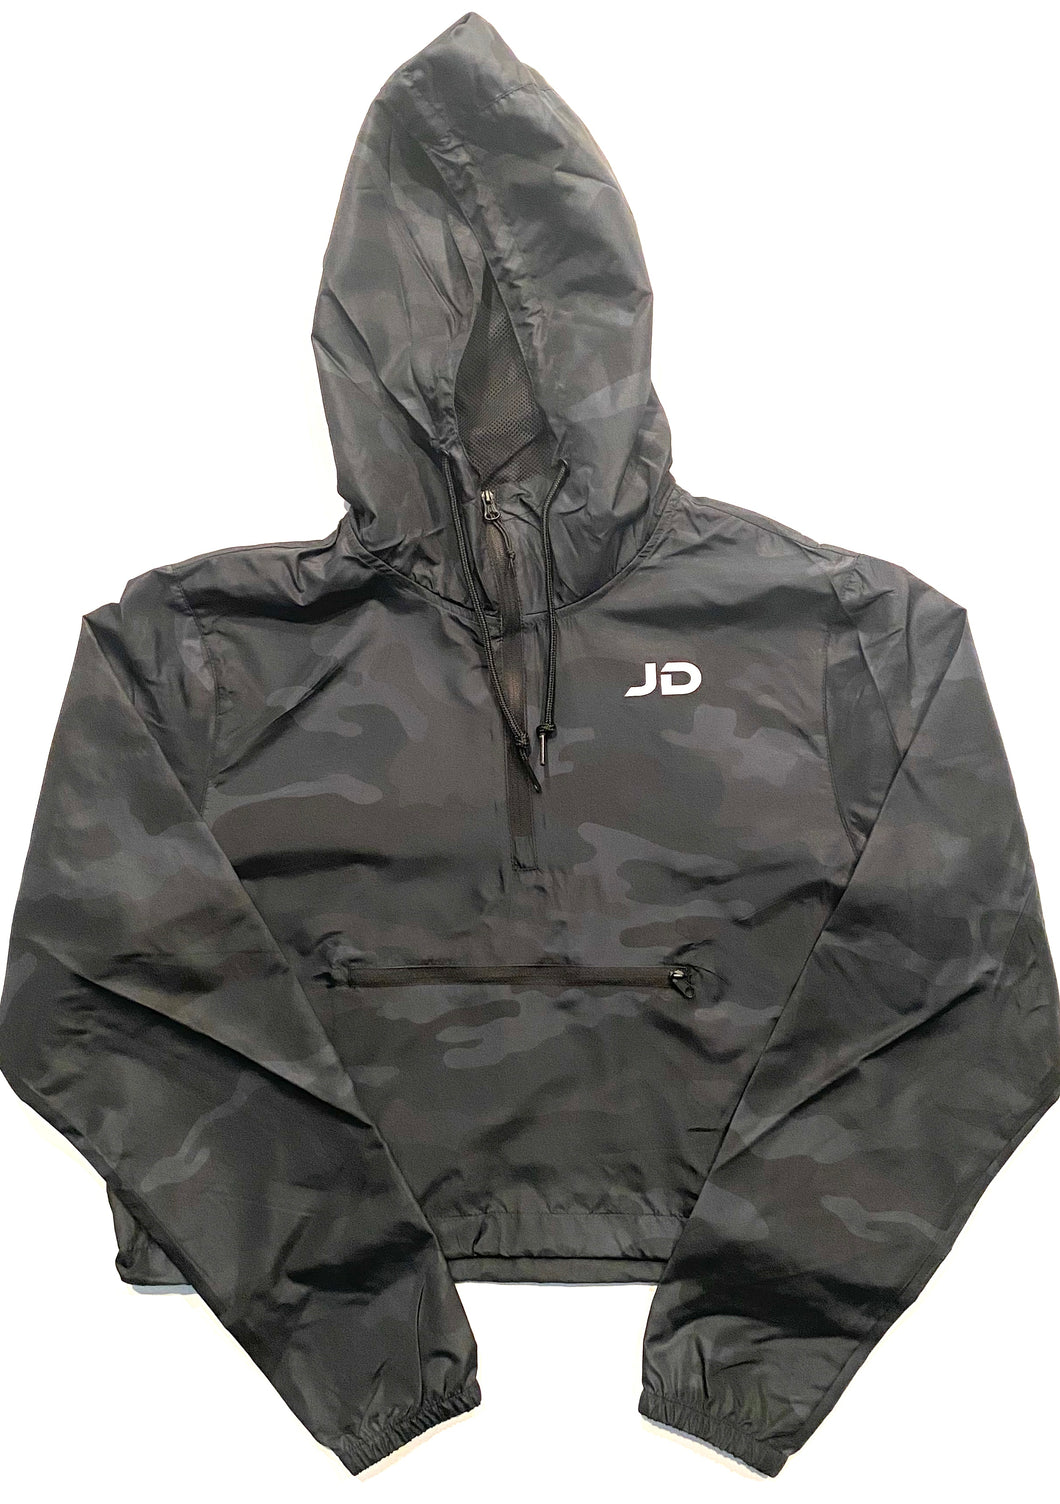 Women's JD Windbreaker